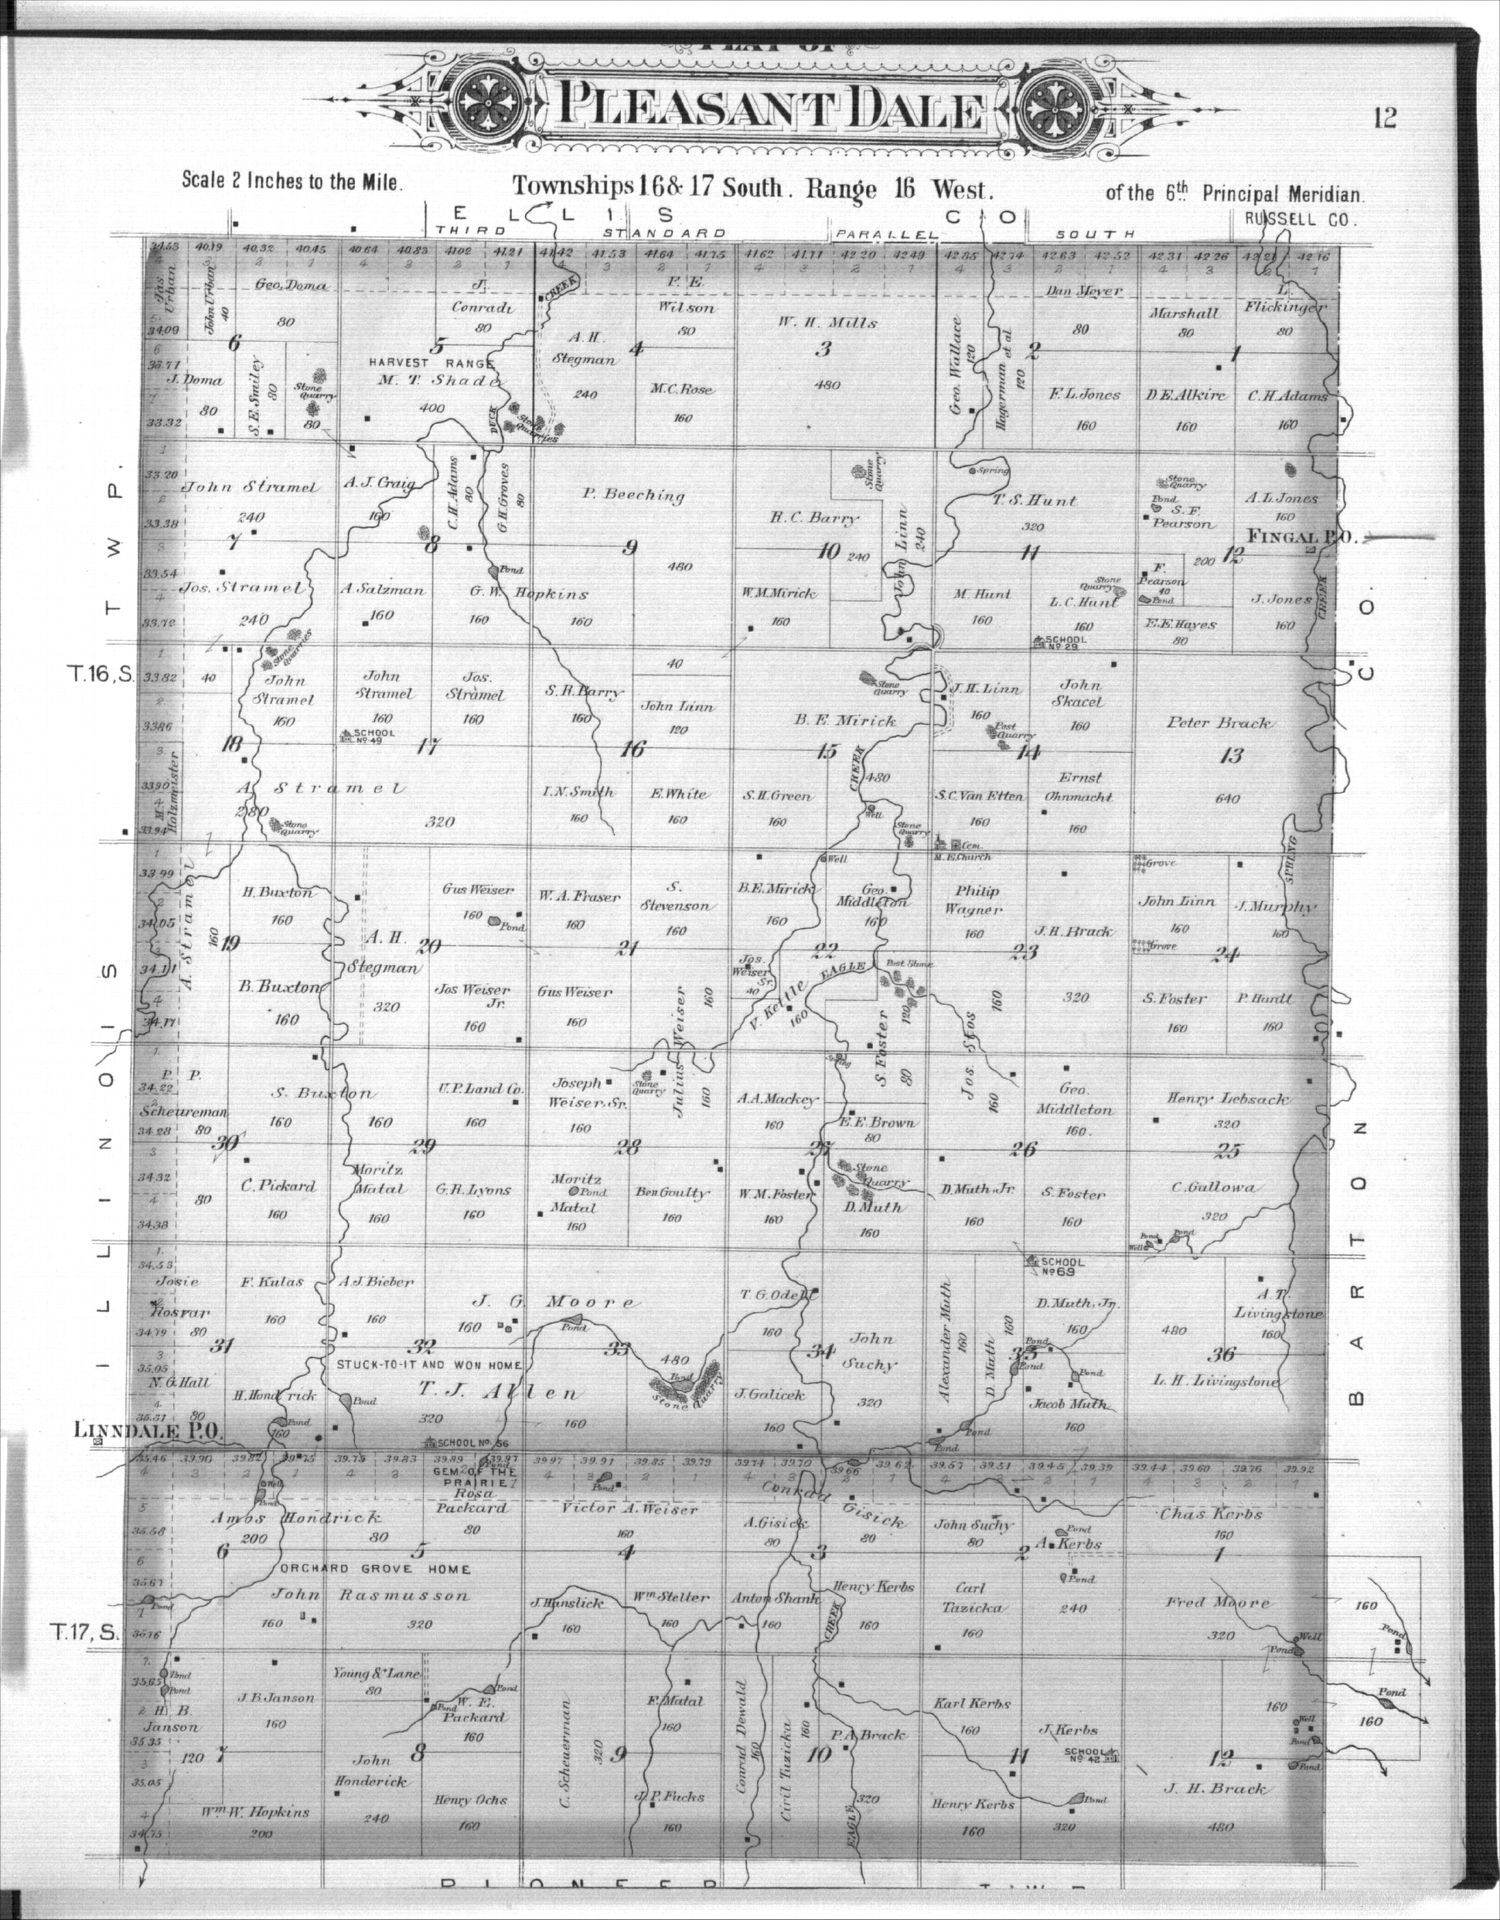 Plat book, Rush County, Kansas - 12